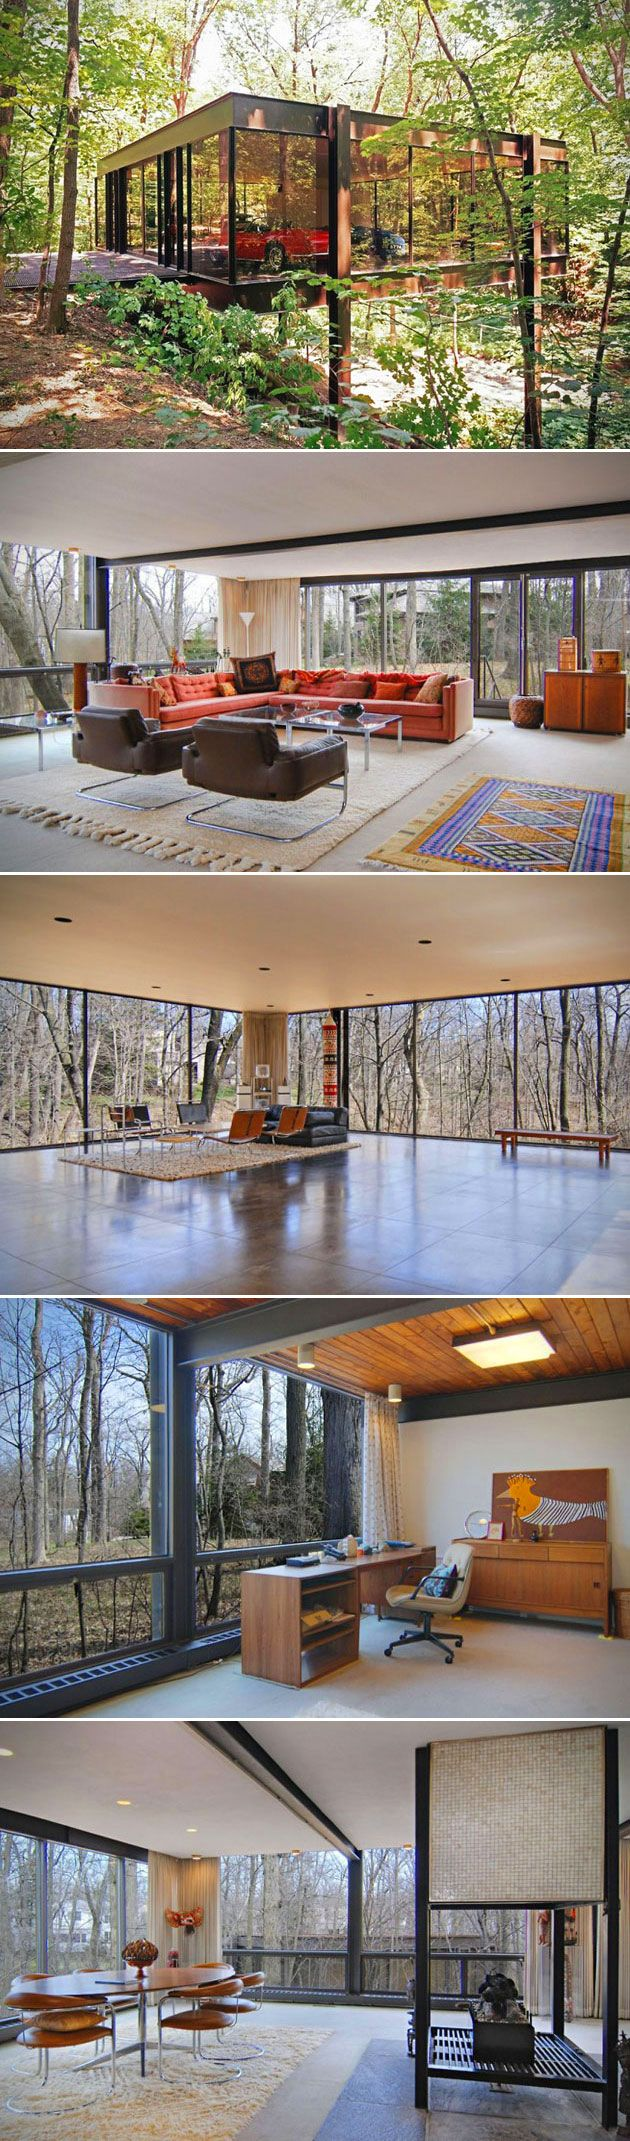 Even though it's been over 25 years since the 1986 release of the classic comedy Ferris Bueller's Day Off, we will never forget Cameron's badass glass house (the one where he accidentally knocked the Ferrari off the jack, sending it right into the ravine out back). The property is located in Highland Park, Illinois, and consists of 2 separate buildings (one of which being the iconic garage of course). The four bedroom, four bath home was originally designed by A. James Speye back in 1953…